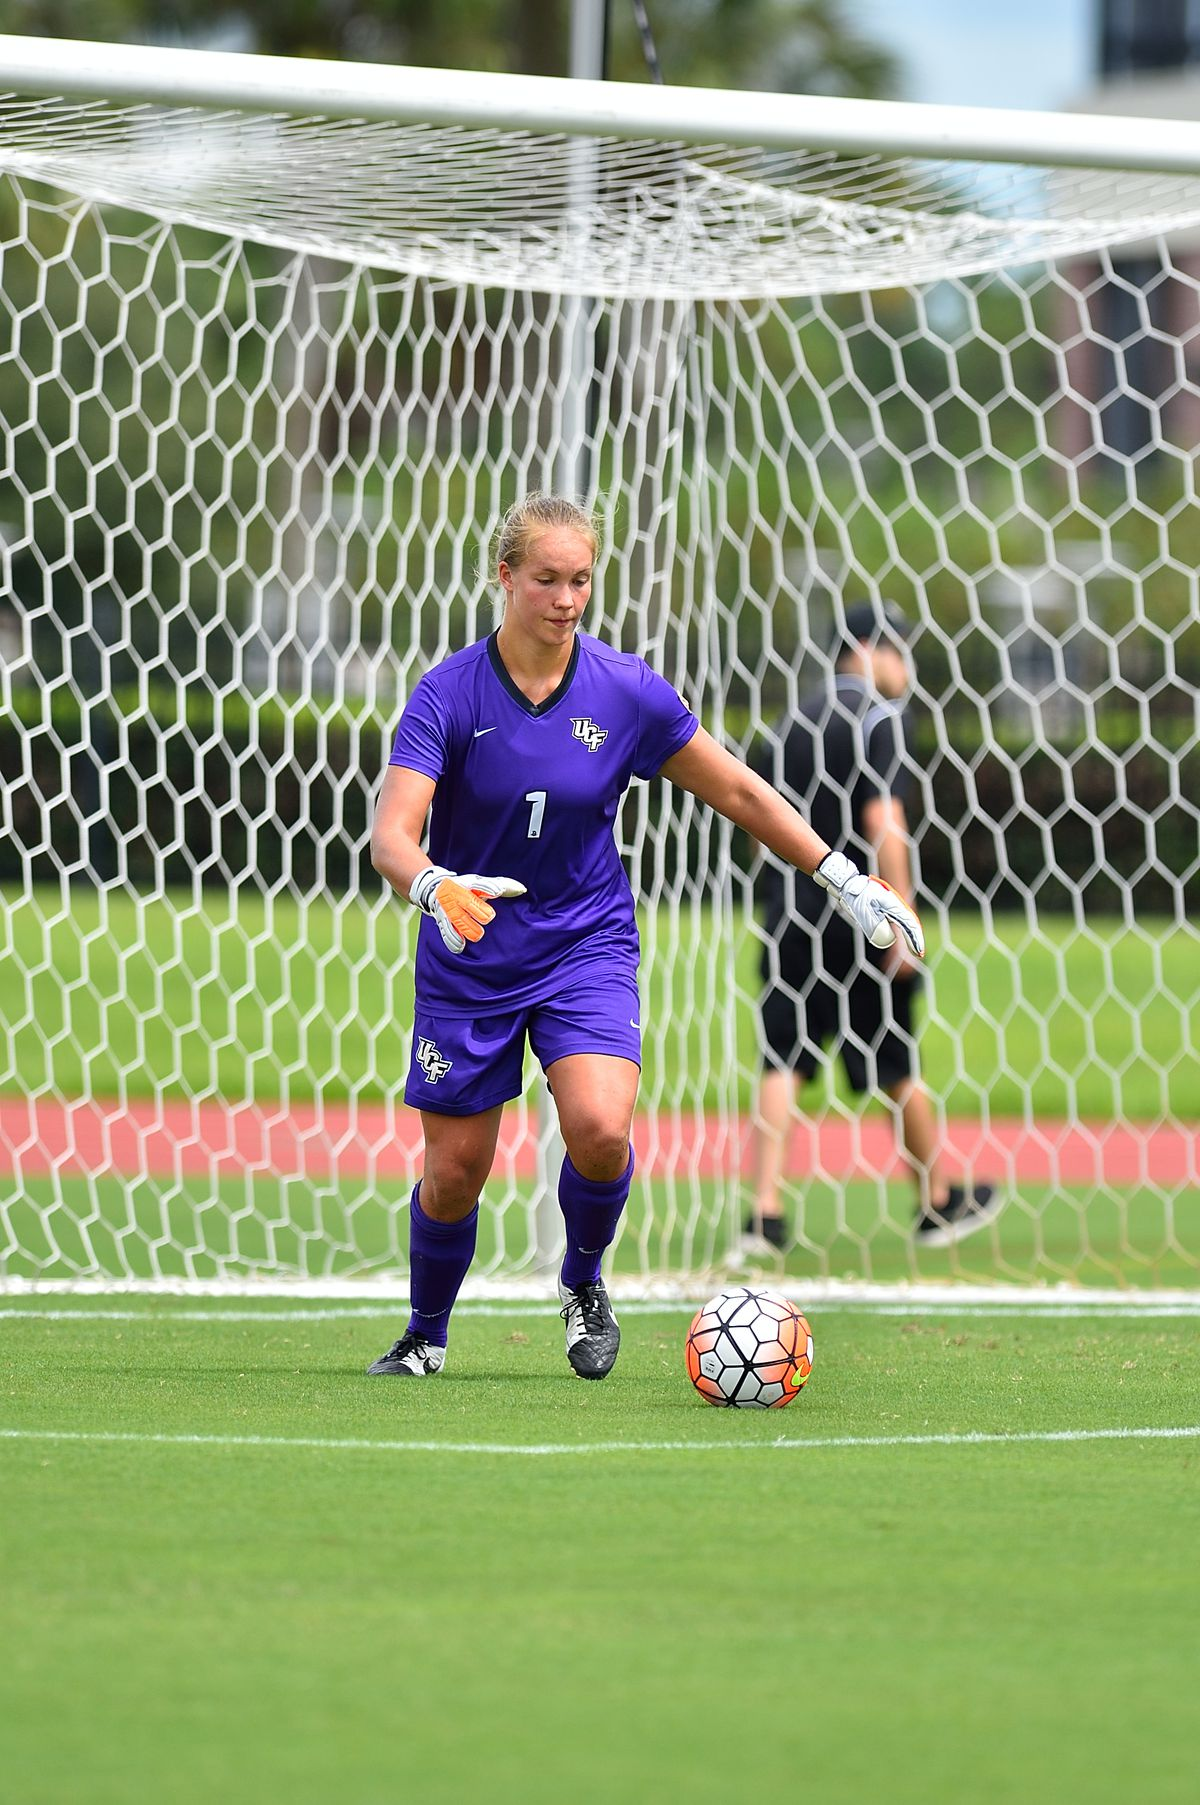 UCF goalkeeper Vera Varis stood on her head in UCF's last two matches of 2015, only to come up short in extra time and PKs. (Photo: UCF Athletics)